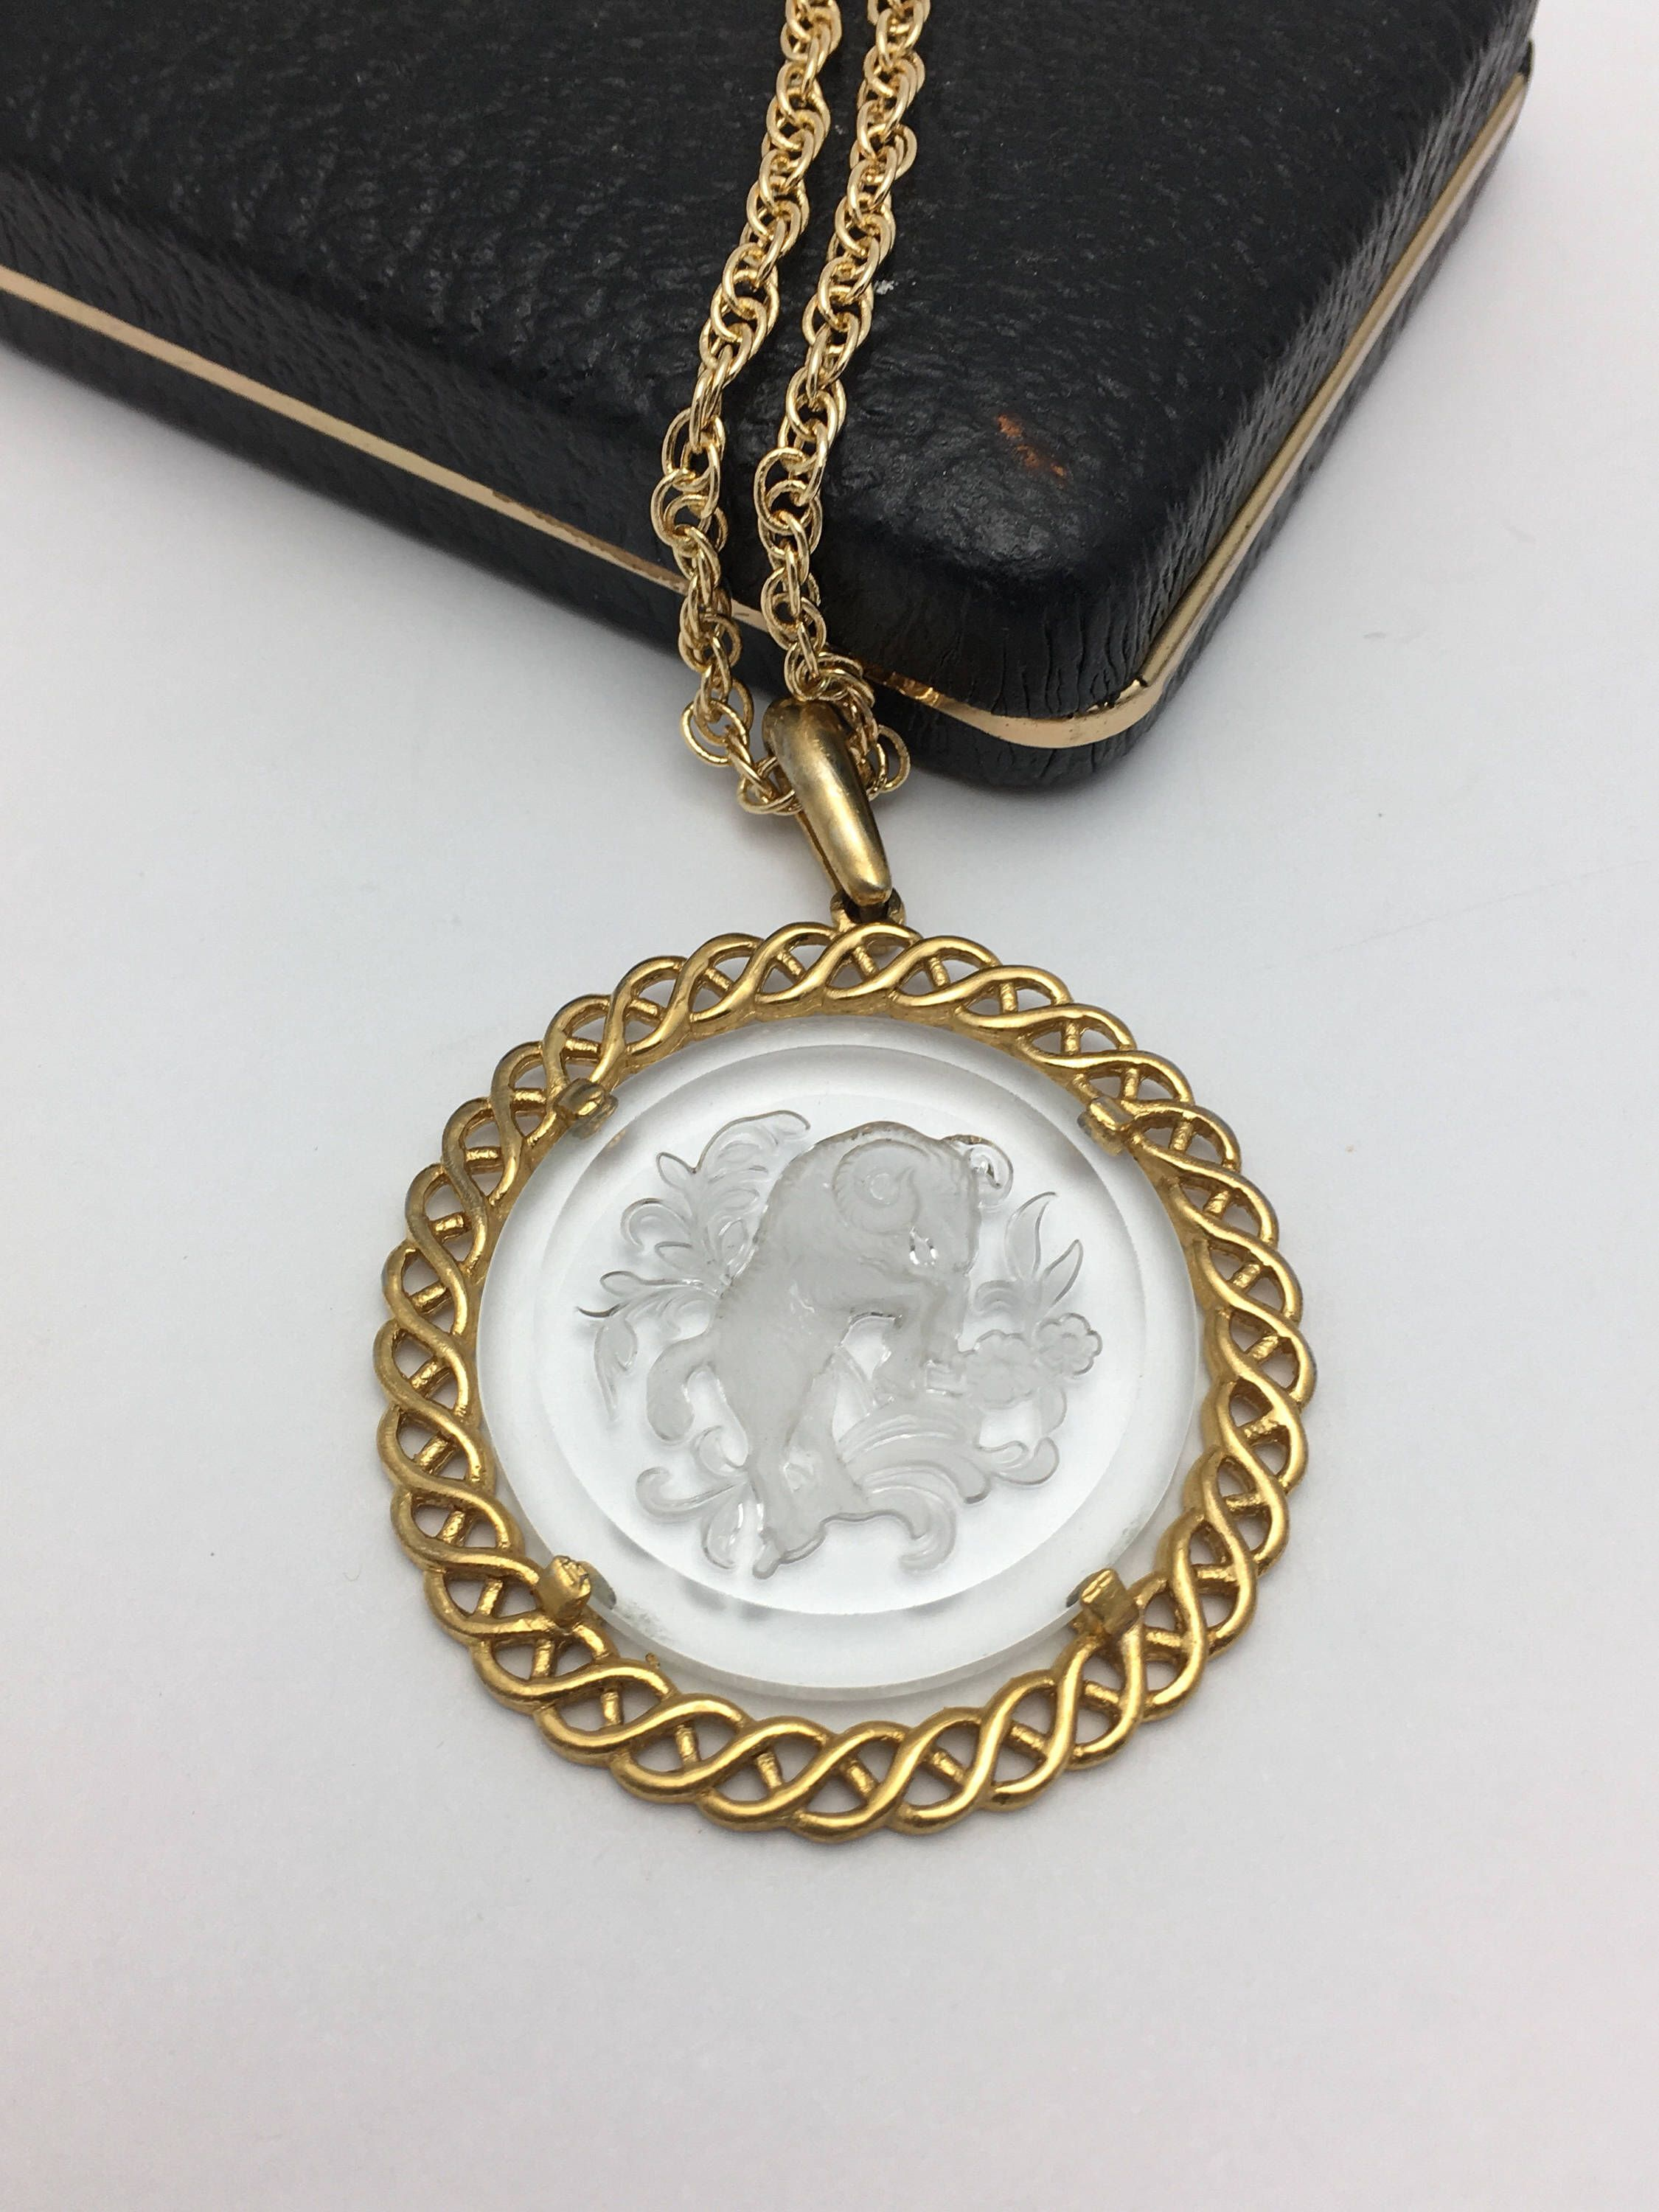 locket cameo vintage intaglio goldette jeweldiva pendant glass necklace